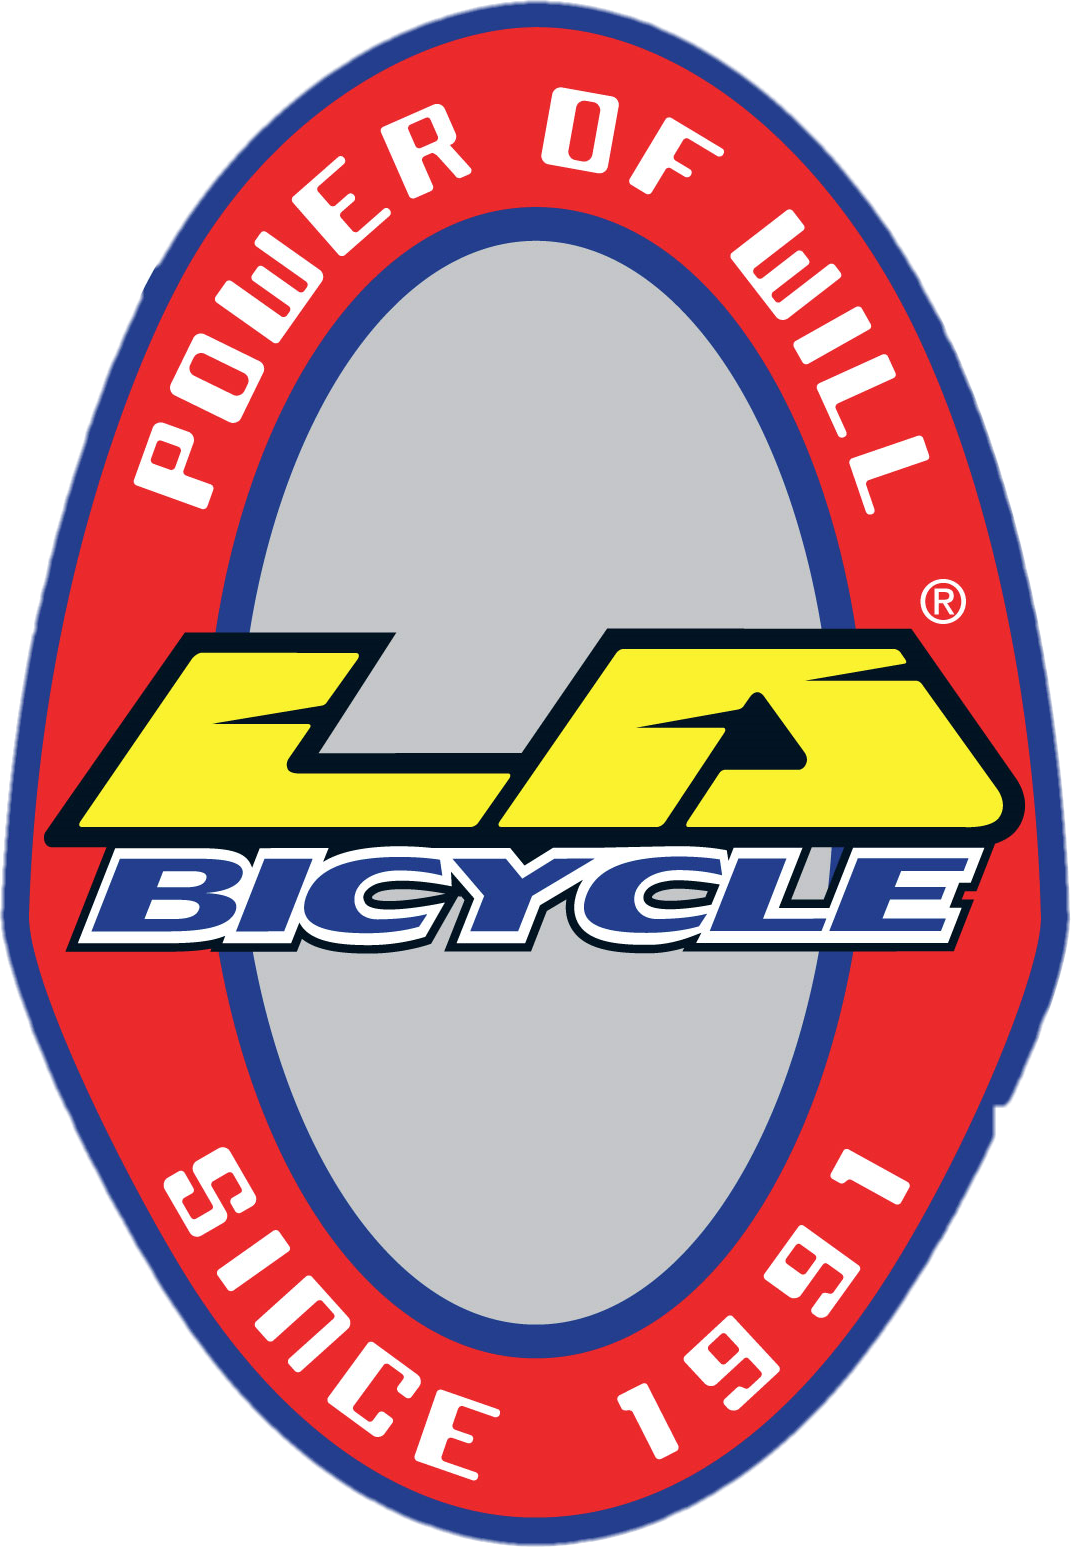 LA Bicycle Group-1 background removed.png